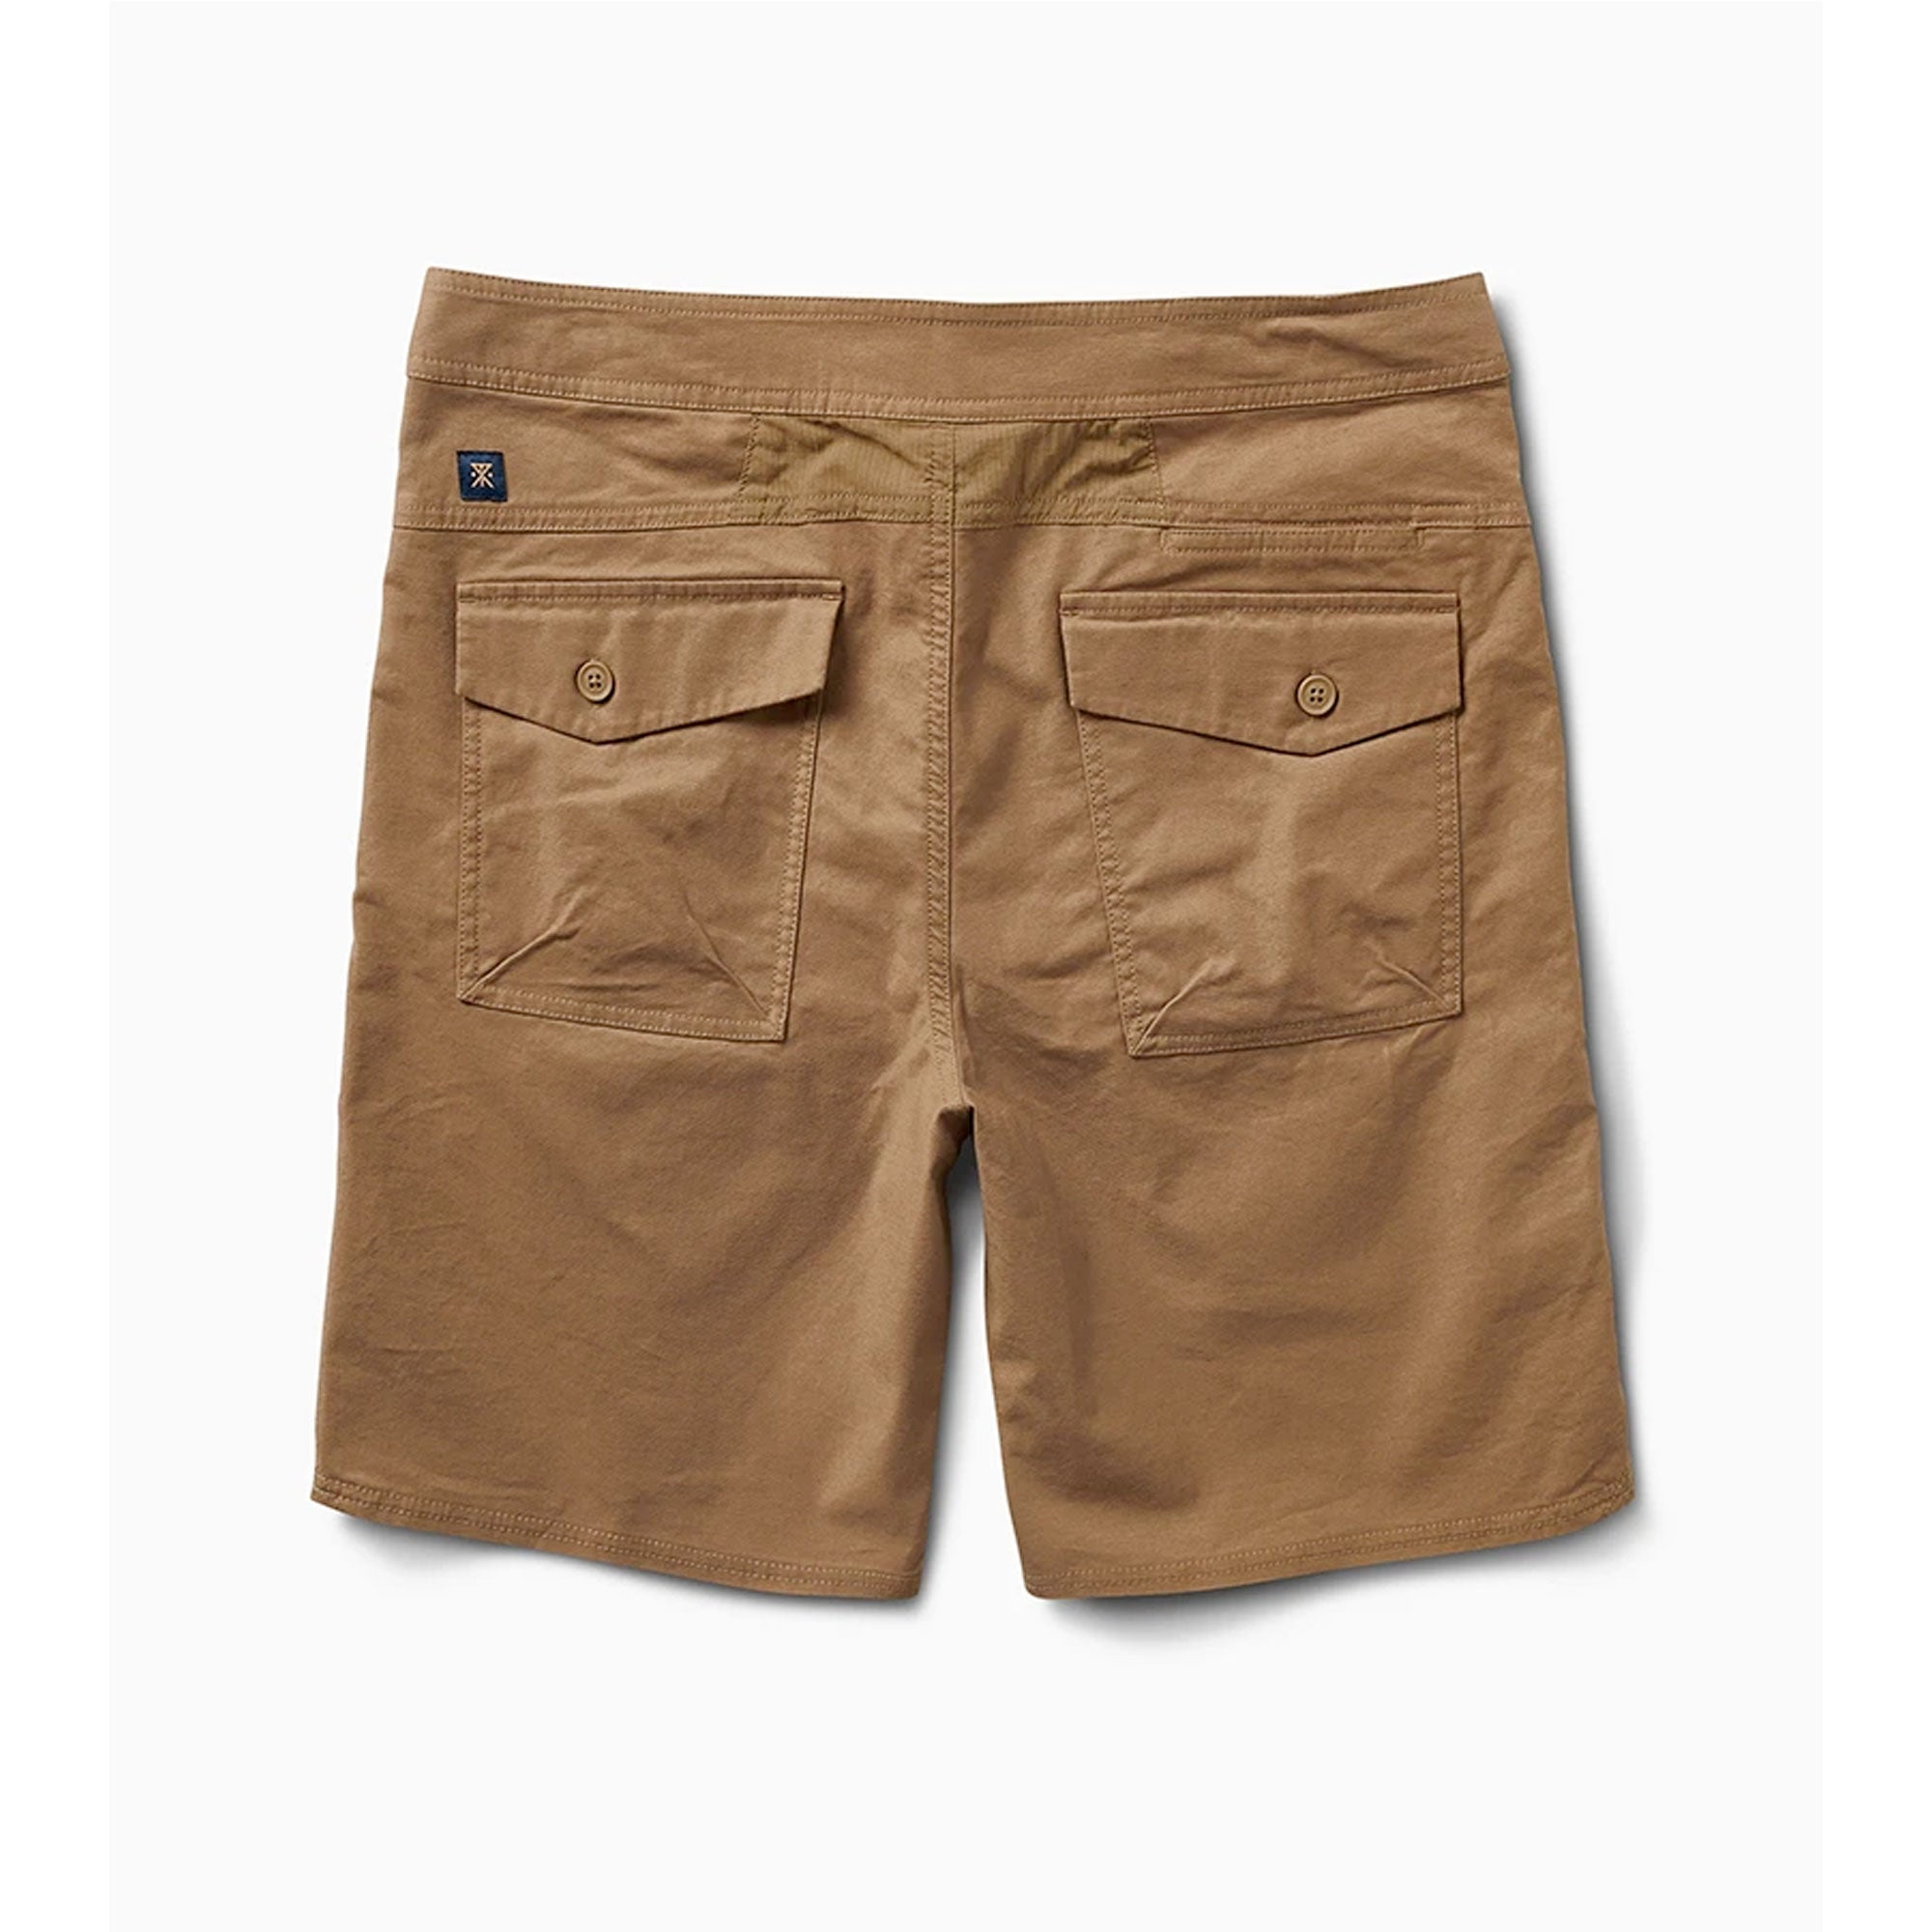 "Roark Layover Men's Stretch Travel 19"" Shorts"